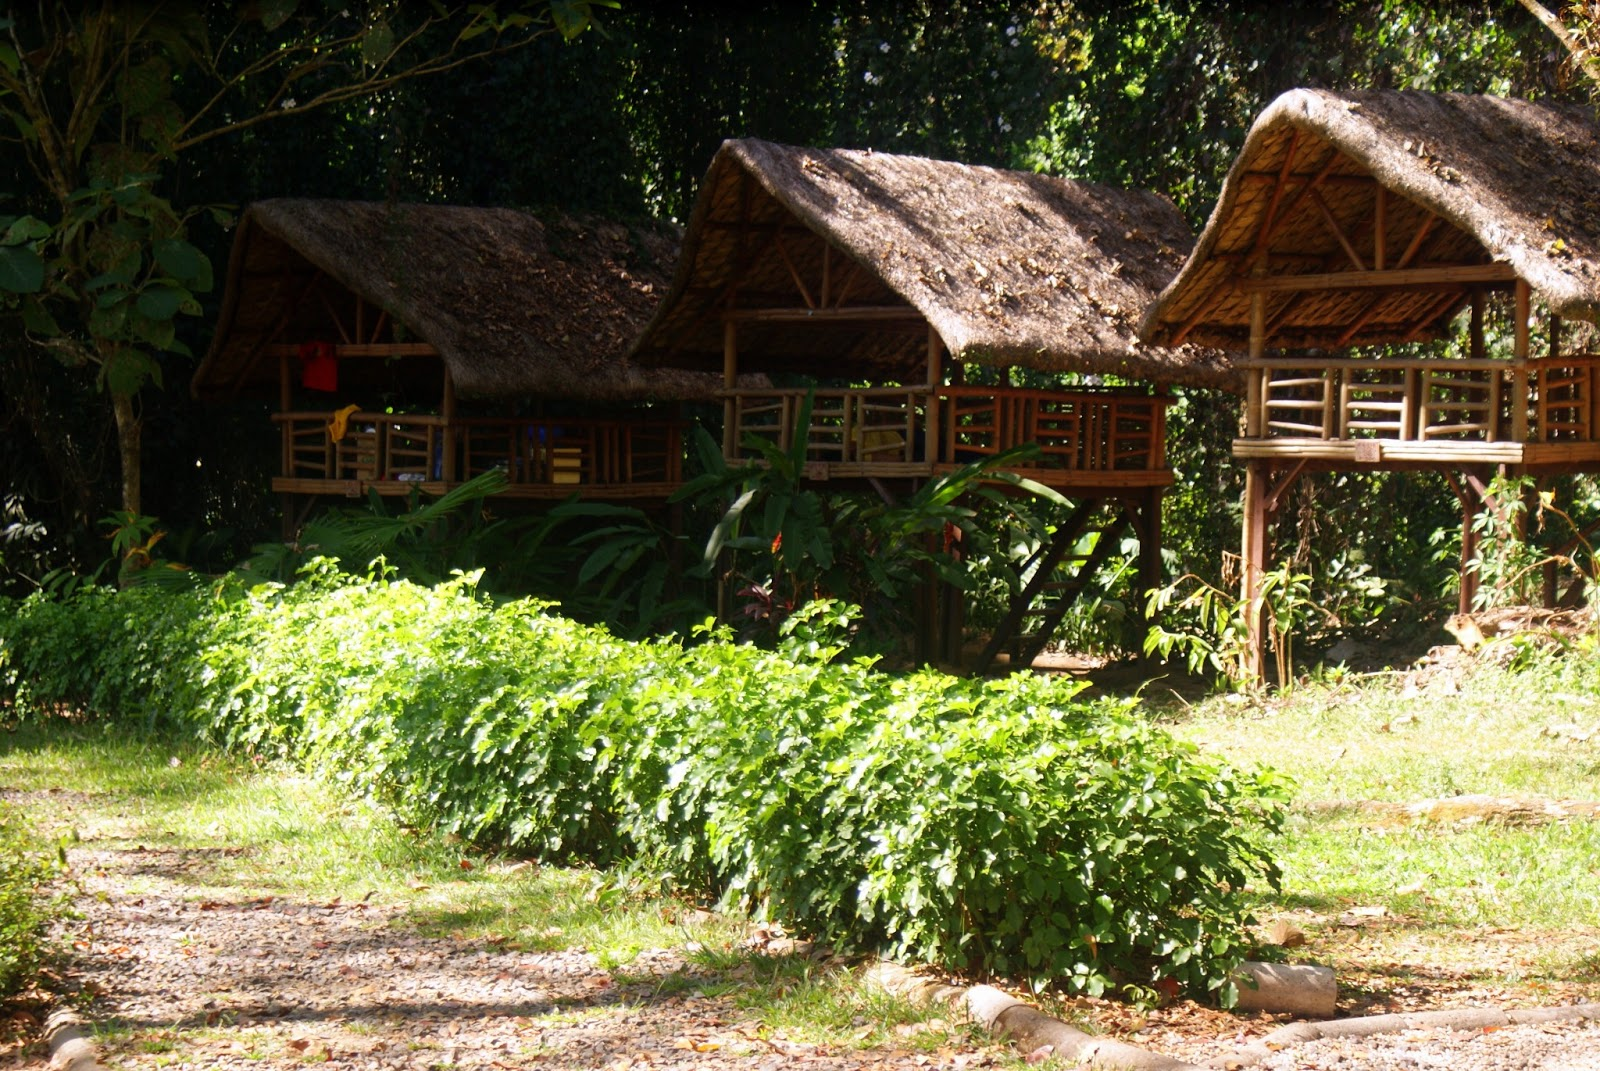 Nipa huts for rent - La mesa eco park swimming pool photos ...